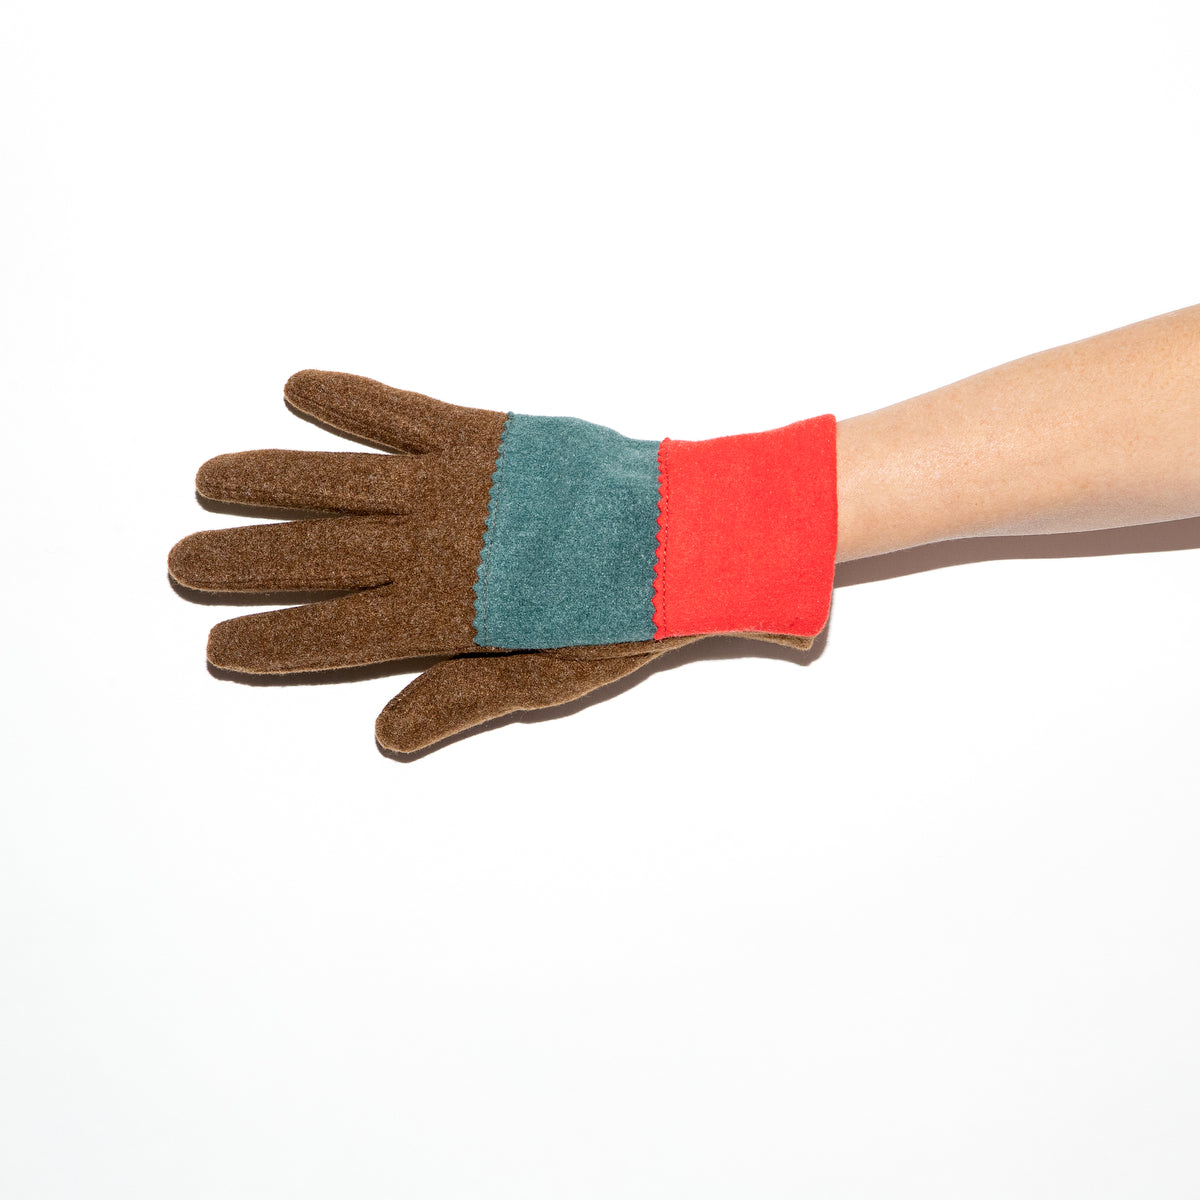 Santacana Knitted Tricolor Glove in Mink/Pacific/Red